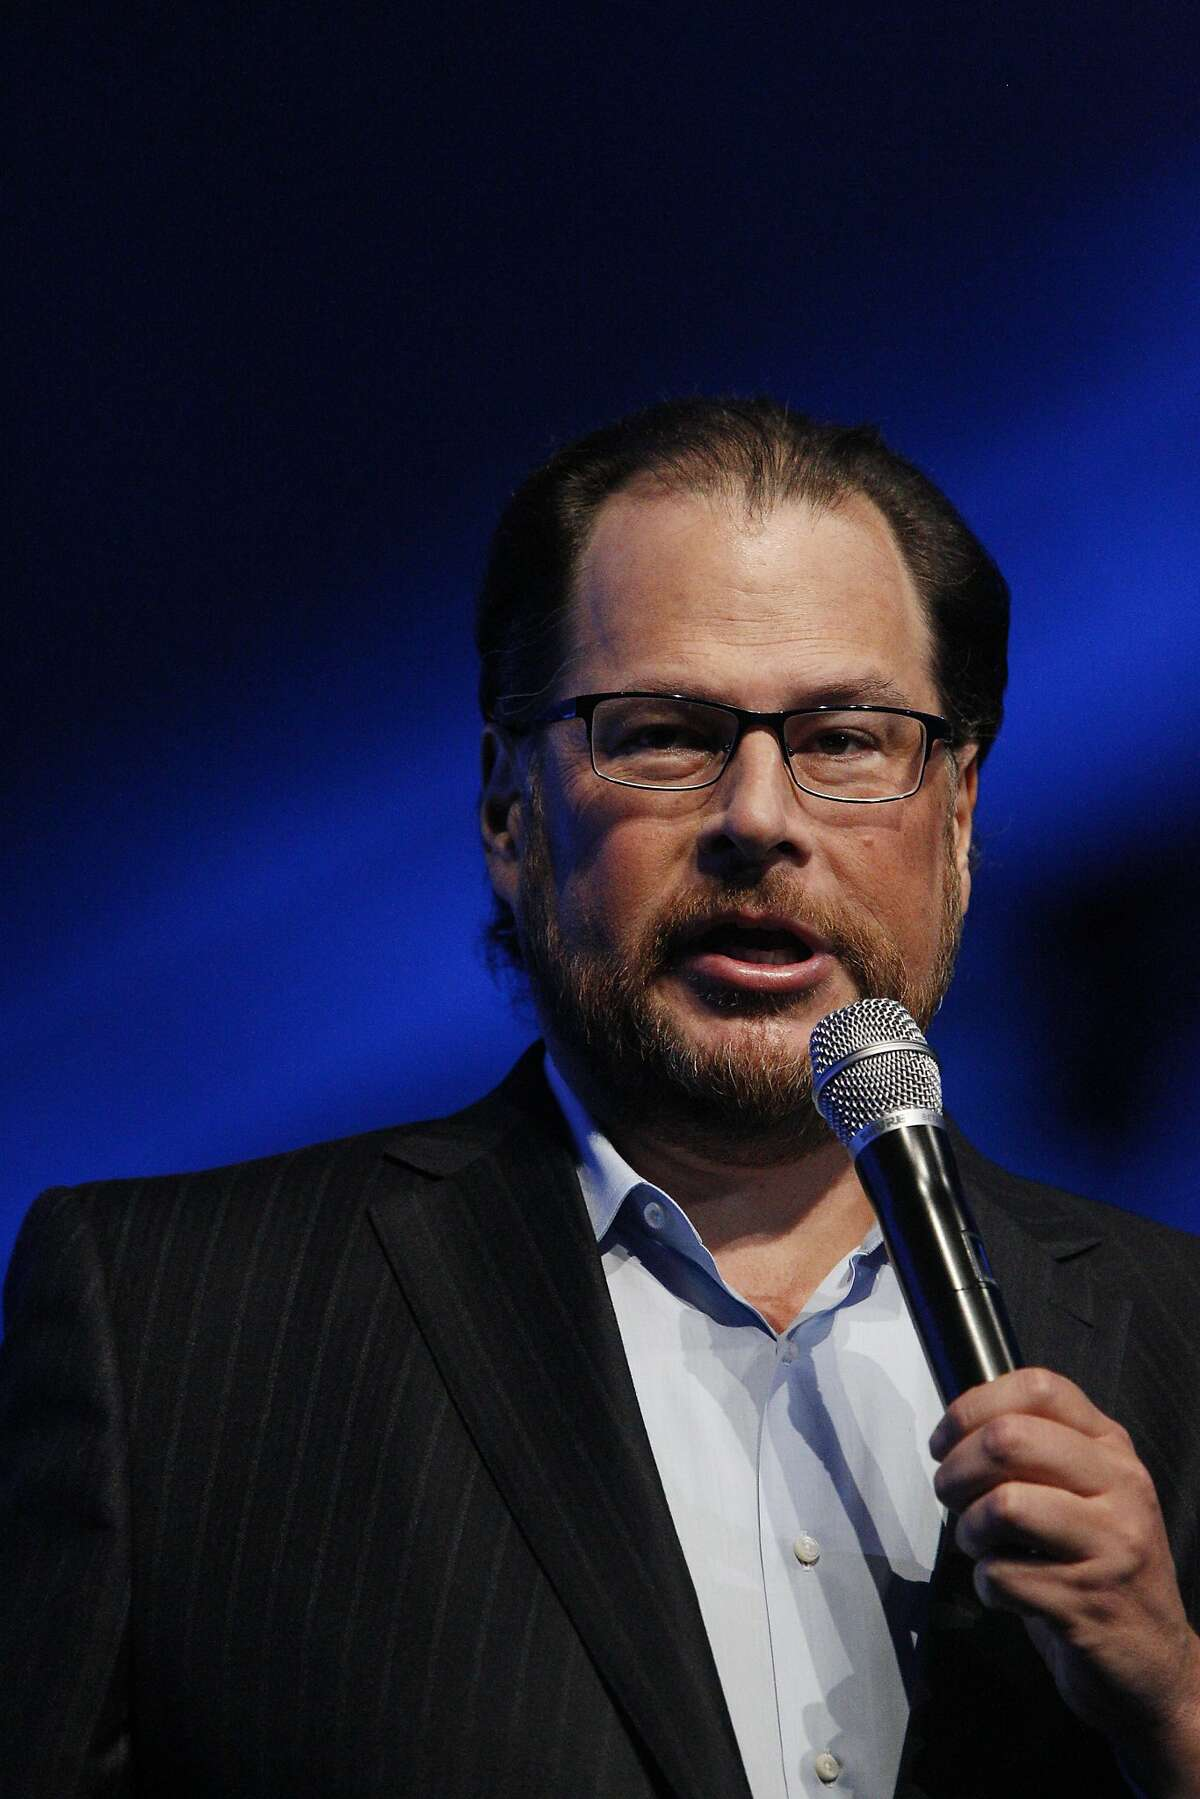 Marc Benioff, Salesforce chairman and CEO, speaks on stage before former Secretary of State Hillary Rodham Clinton gives her keynote in Moscone South on Tuesday, October 14, 2014 in San Francisco, Calif.